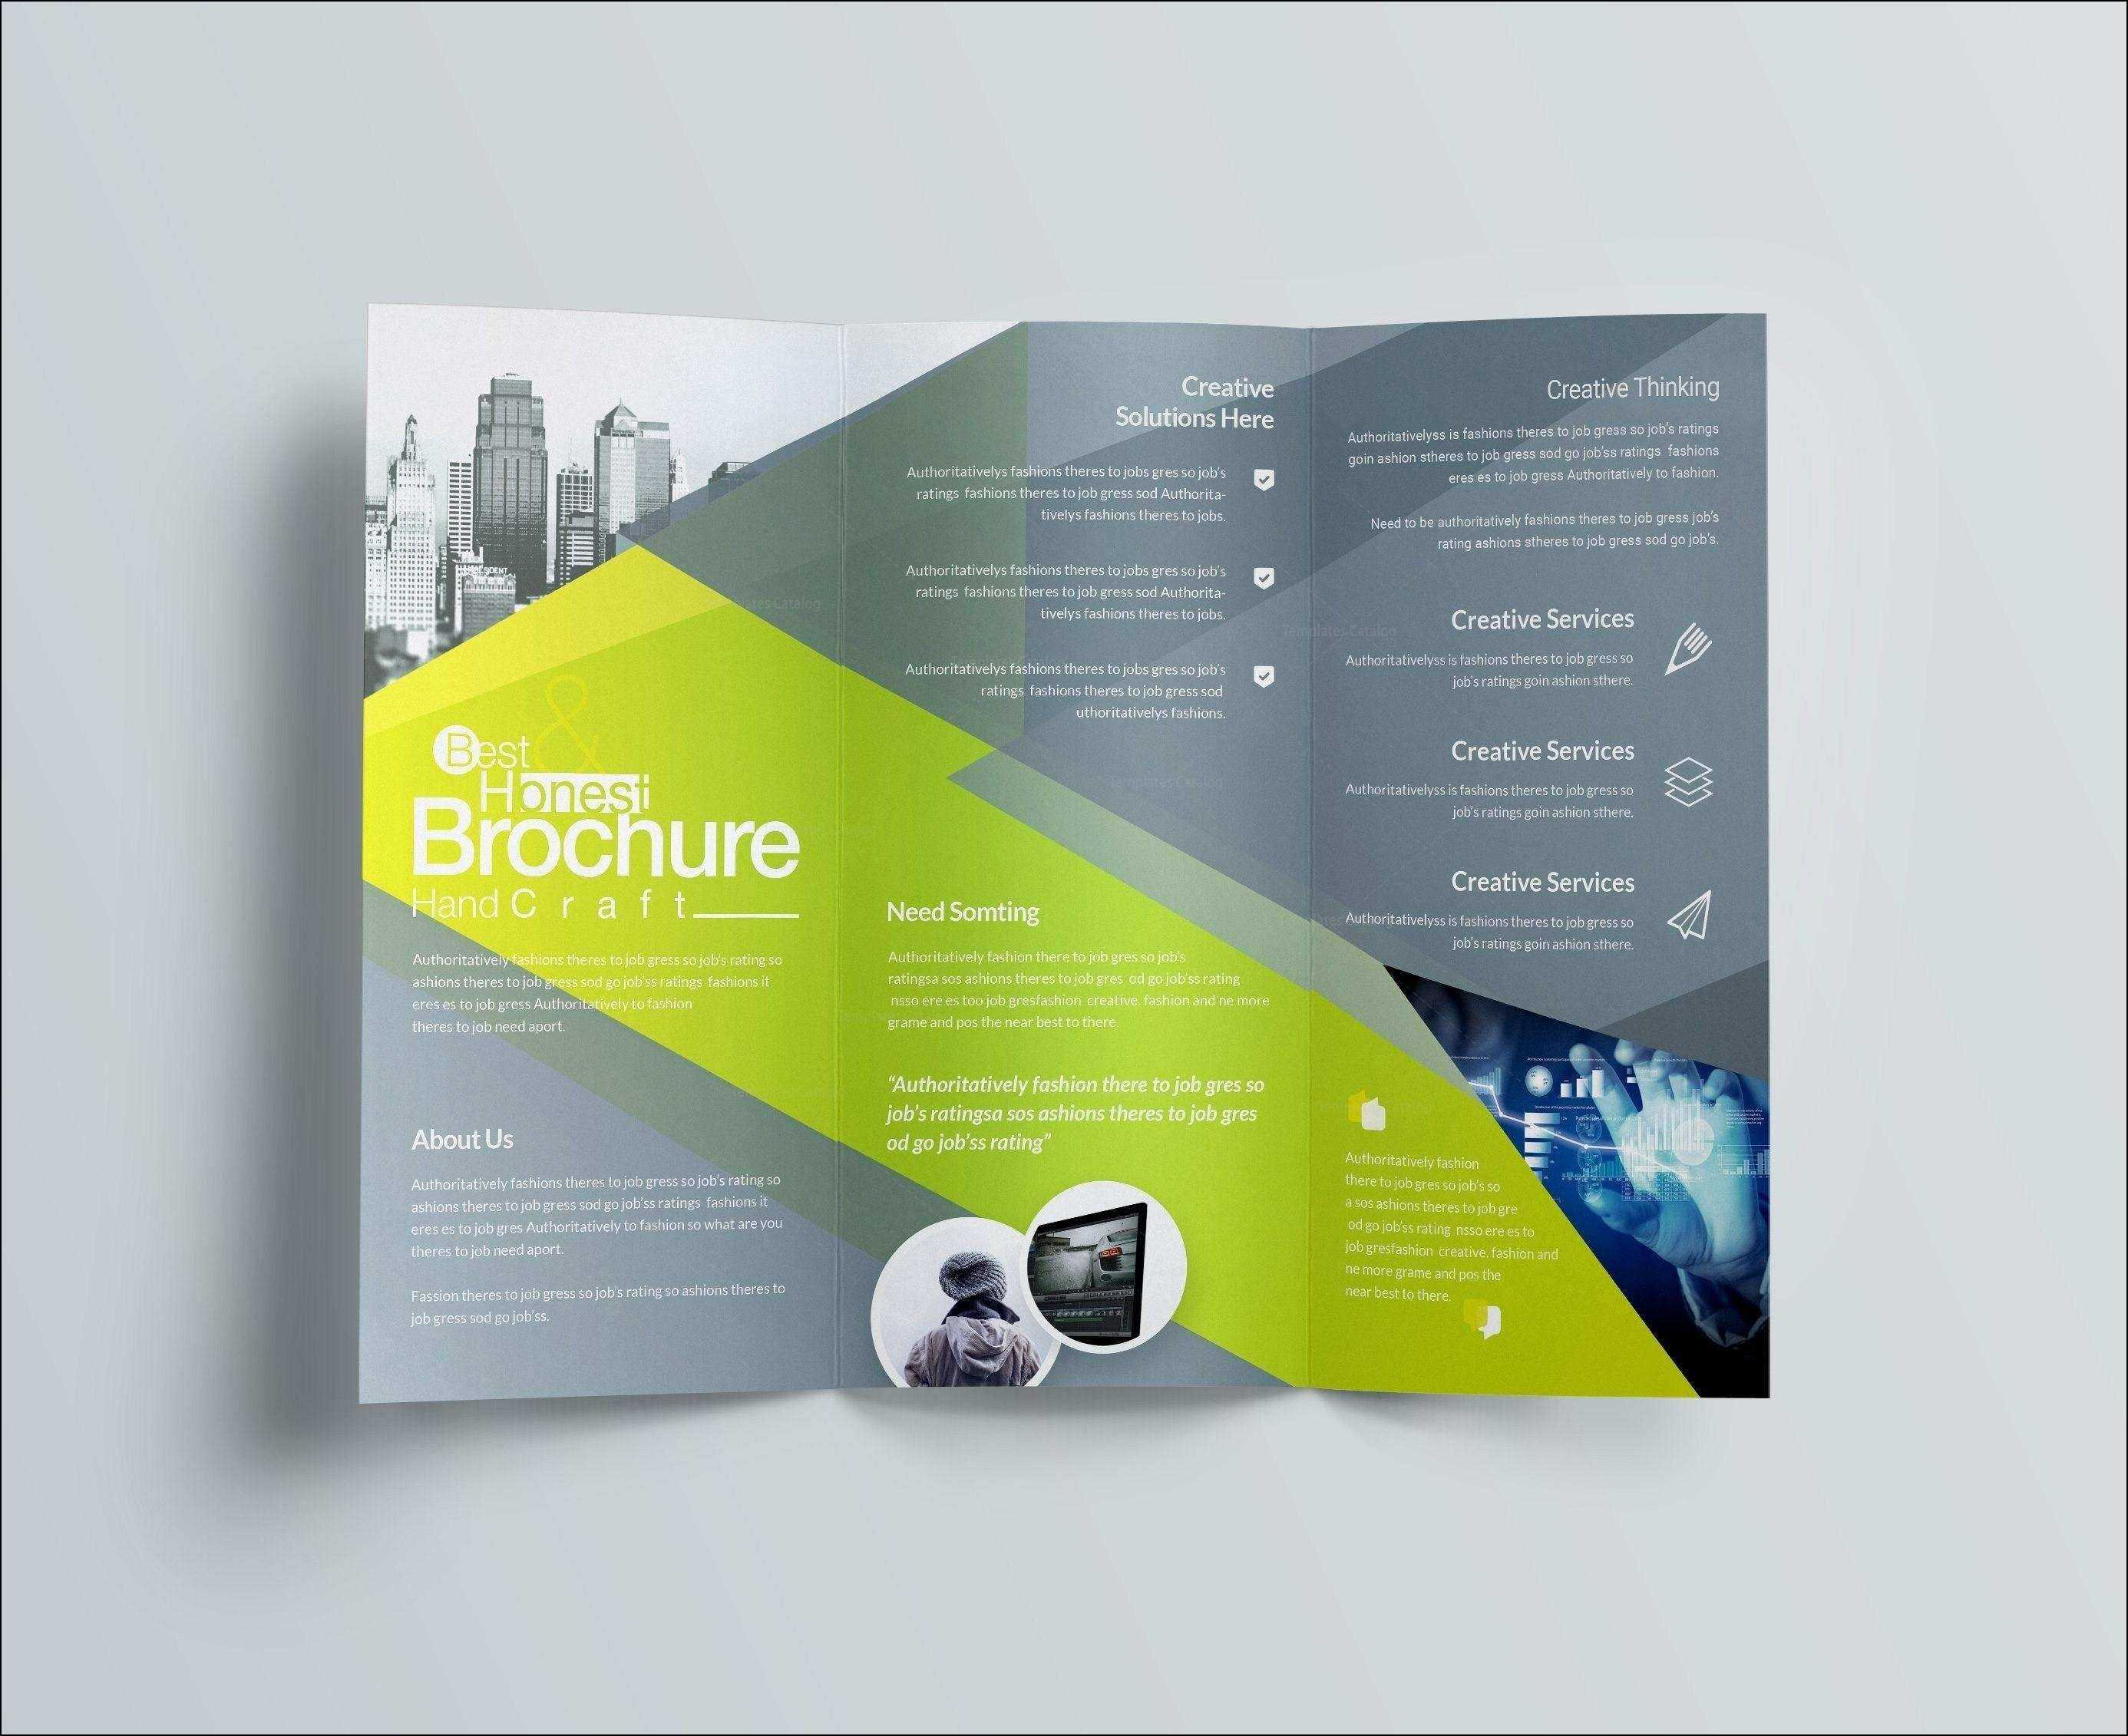 002 Ms Publisher Brochure Template Singular Ideas Templates Intended For Free Template For Brochure Microsoft Office